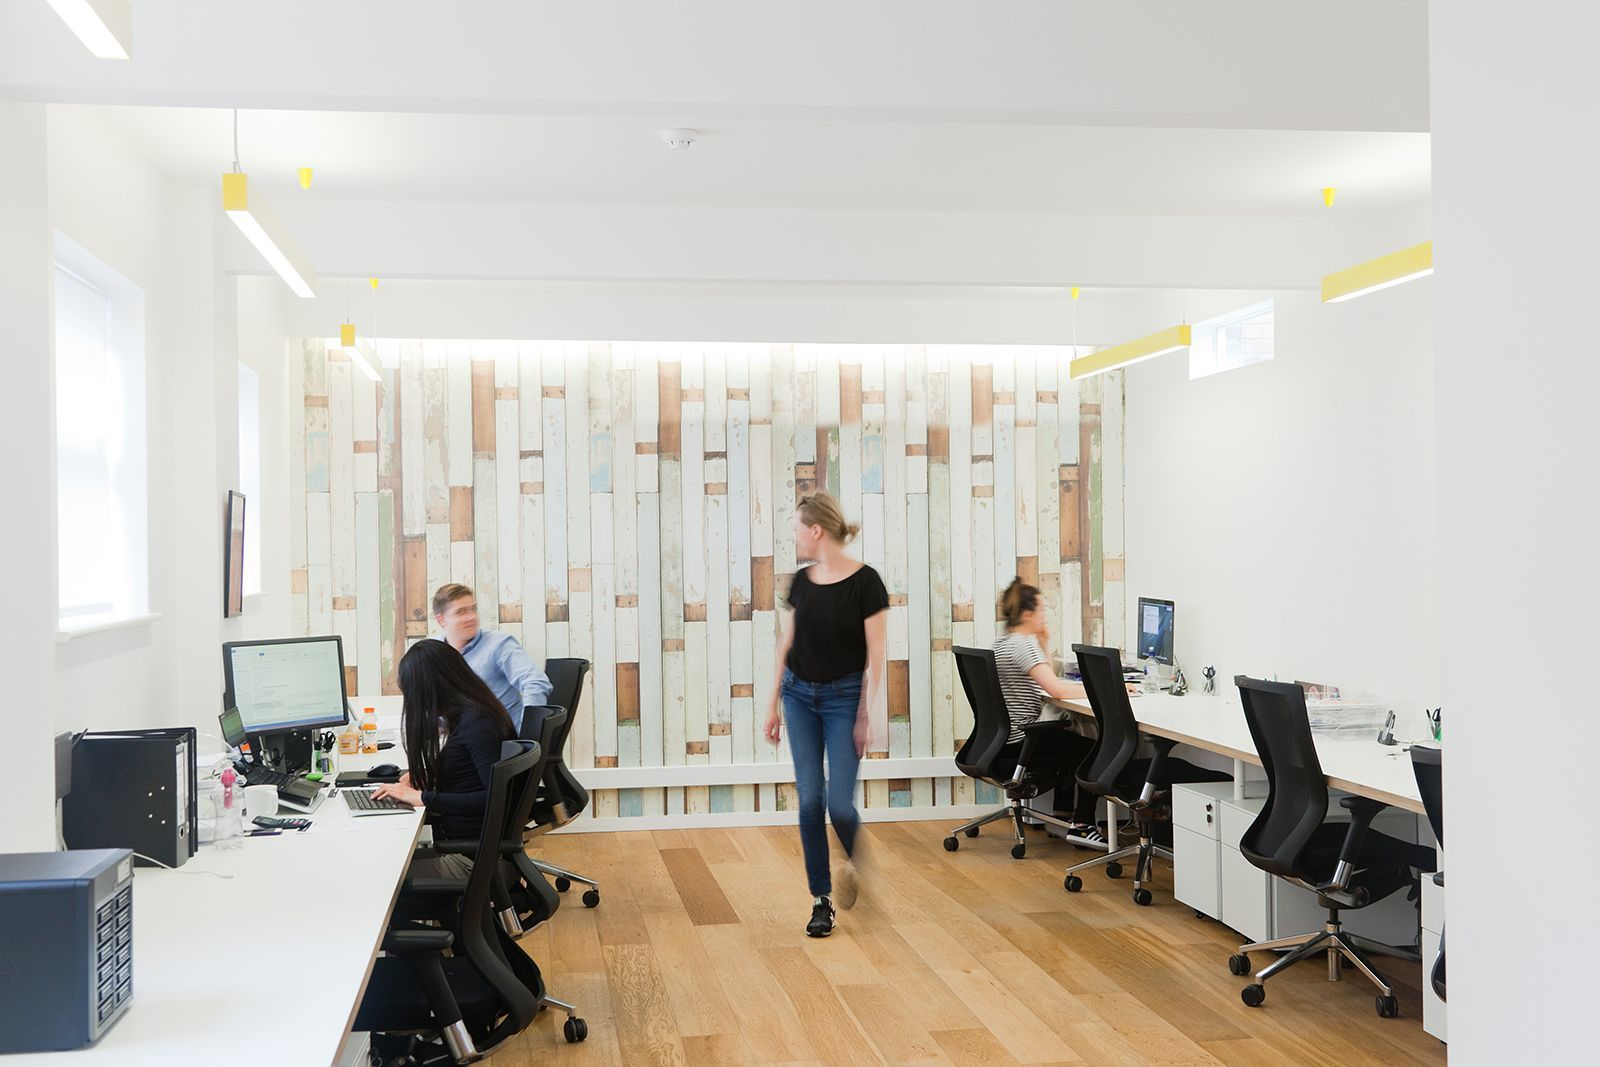 A Quick Look Inside X-treme Video's Chic London Office